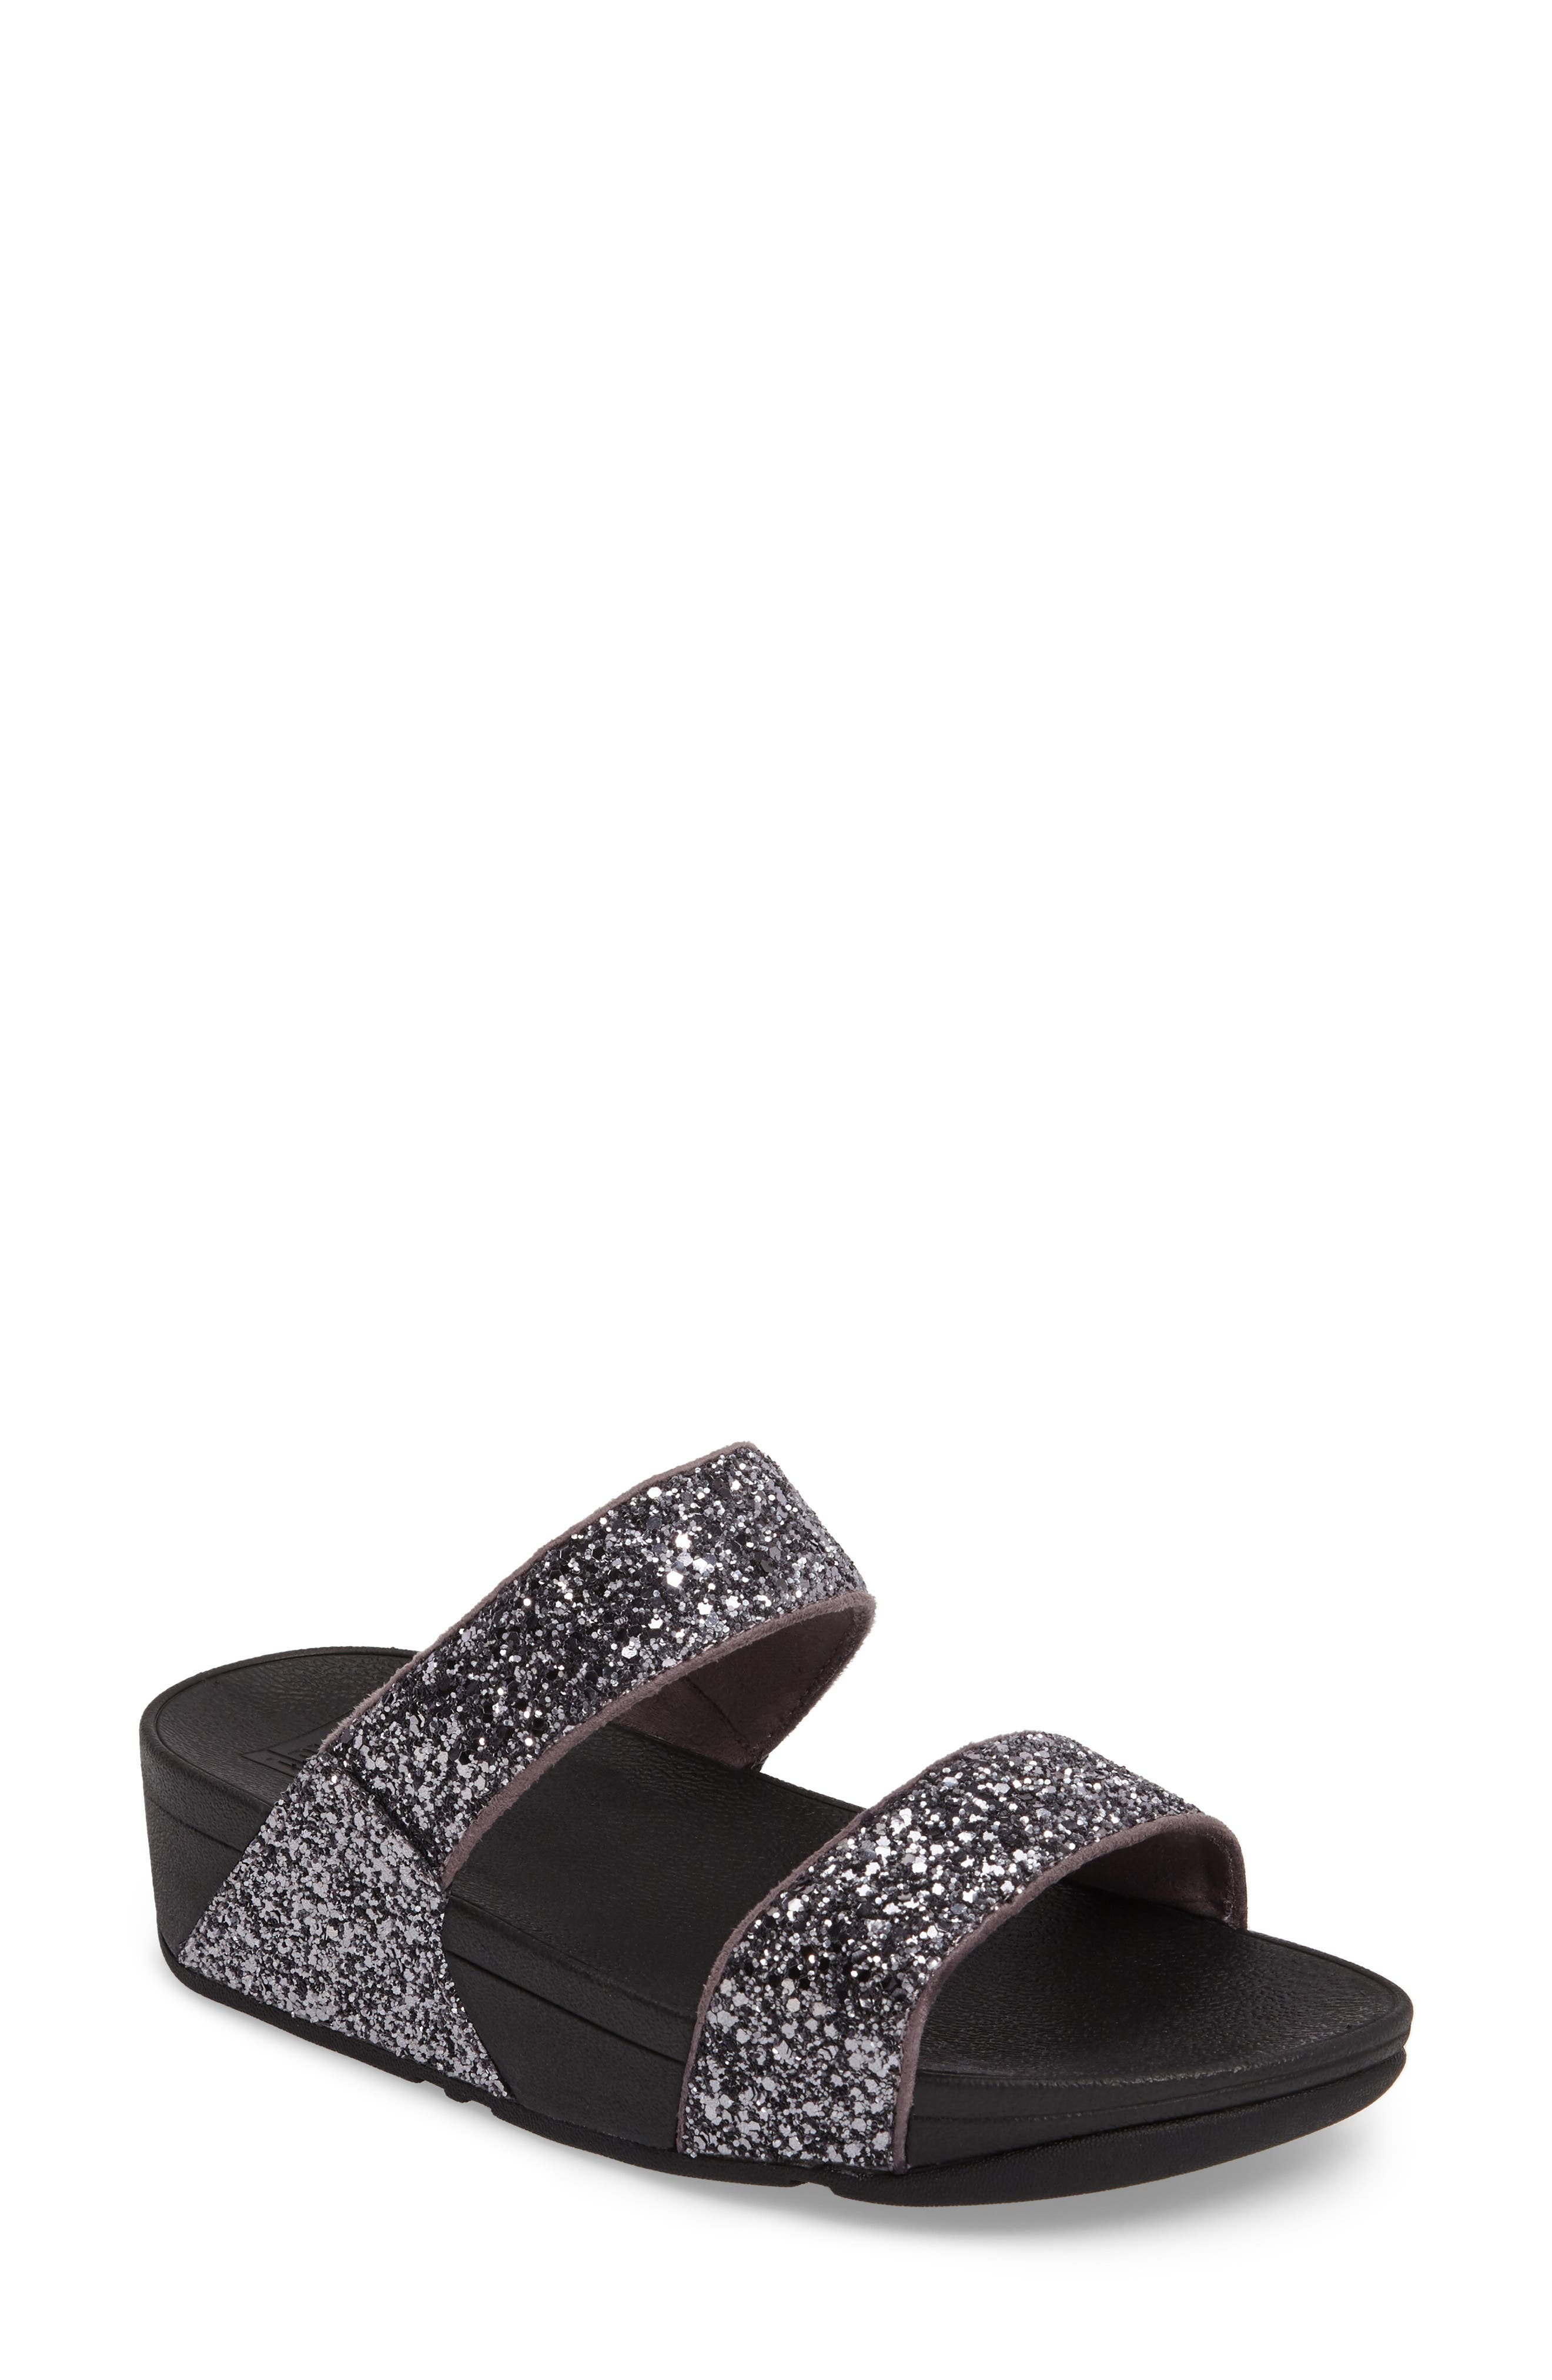 Main Image - FitFlop Glitterball Slide Sandal